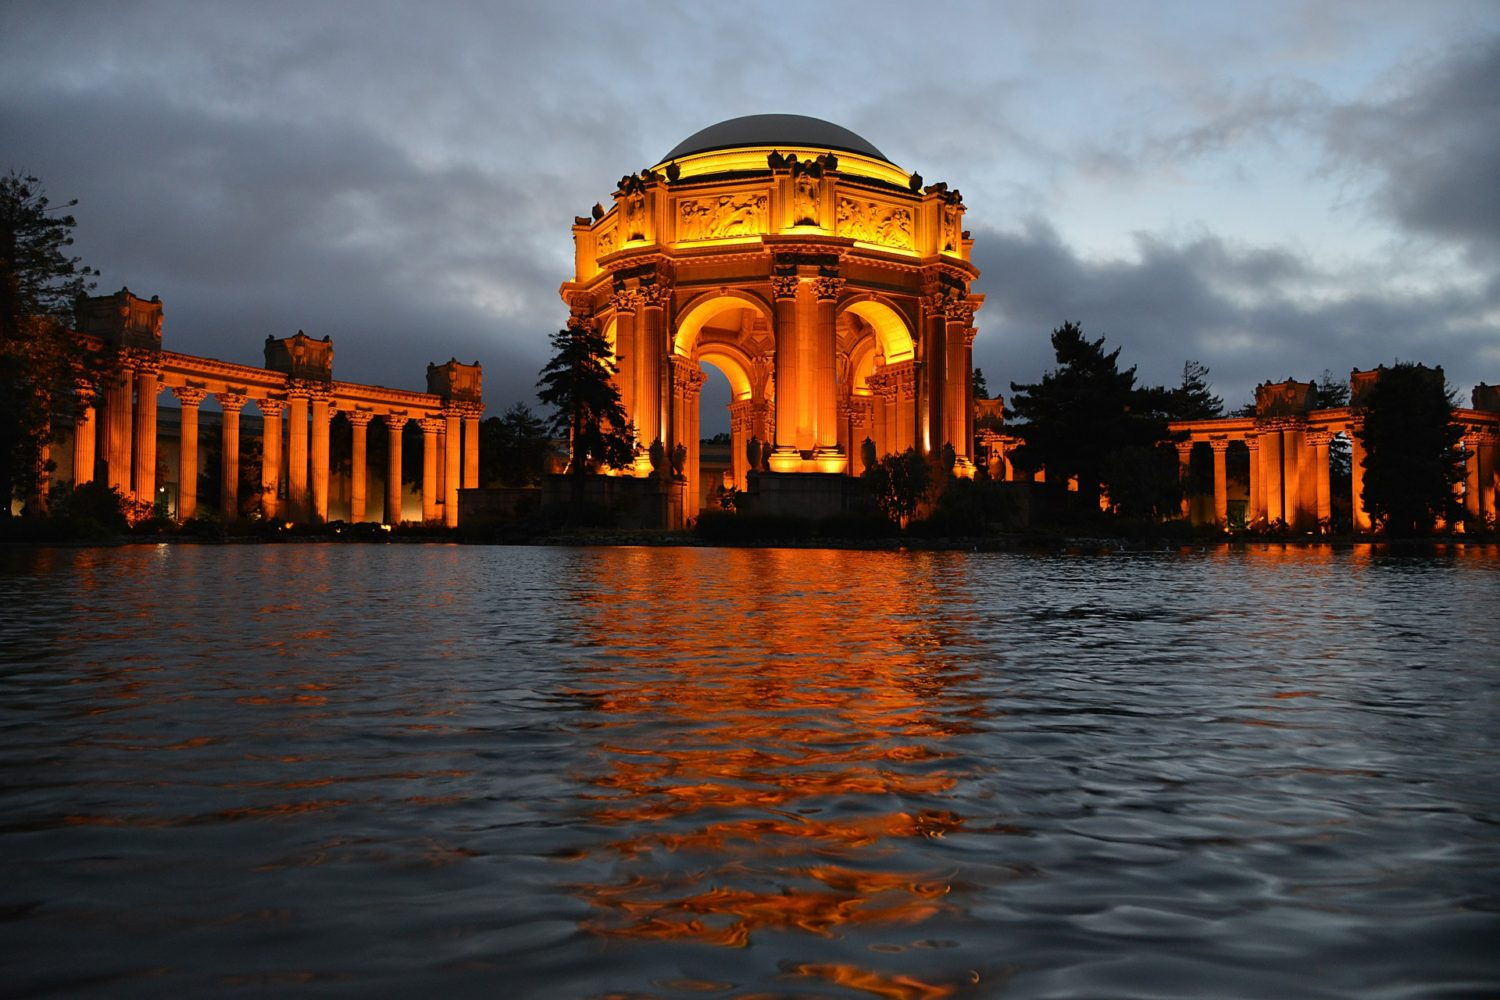 Palace of Fine Arts Theatre, San Francisco, California